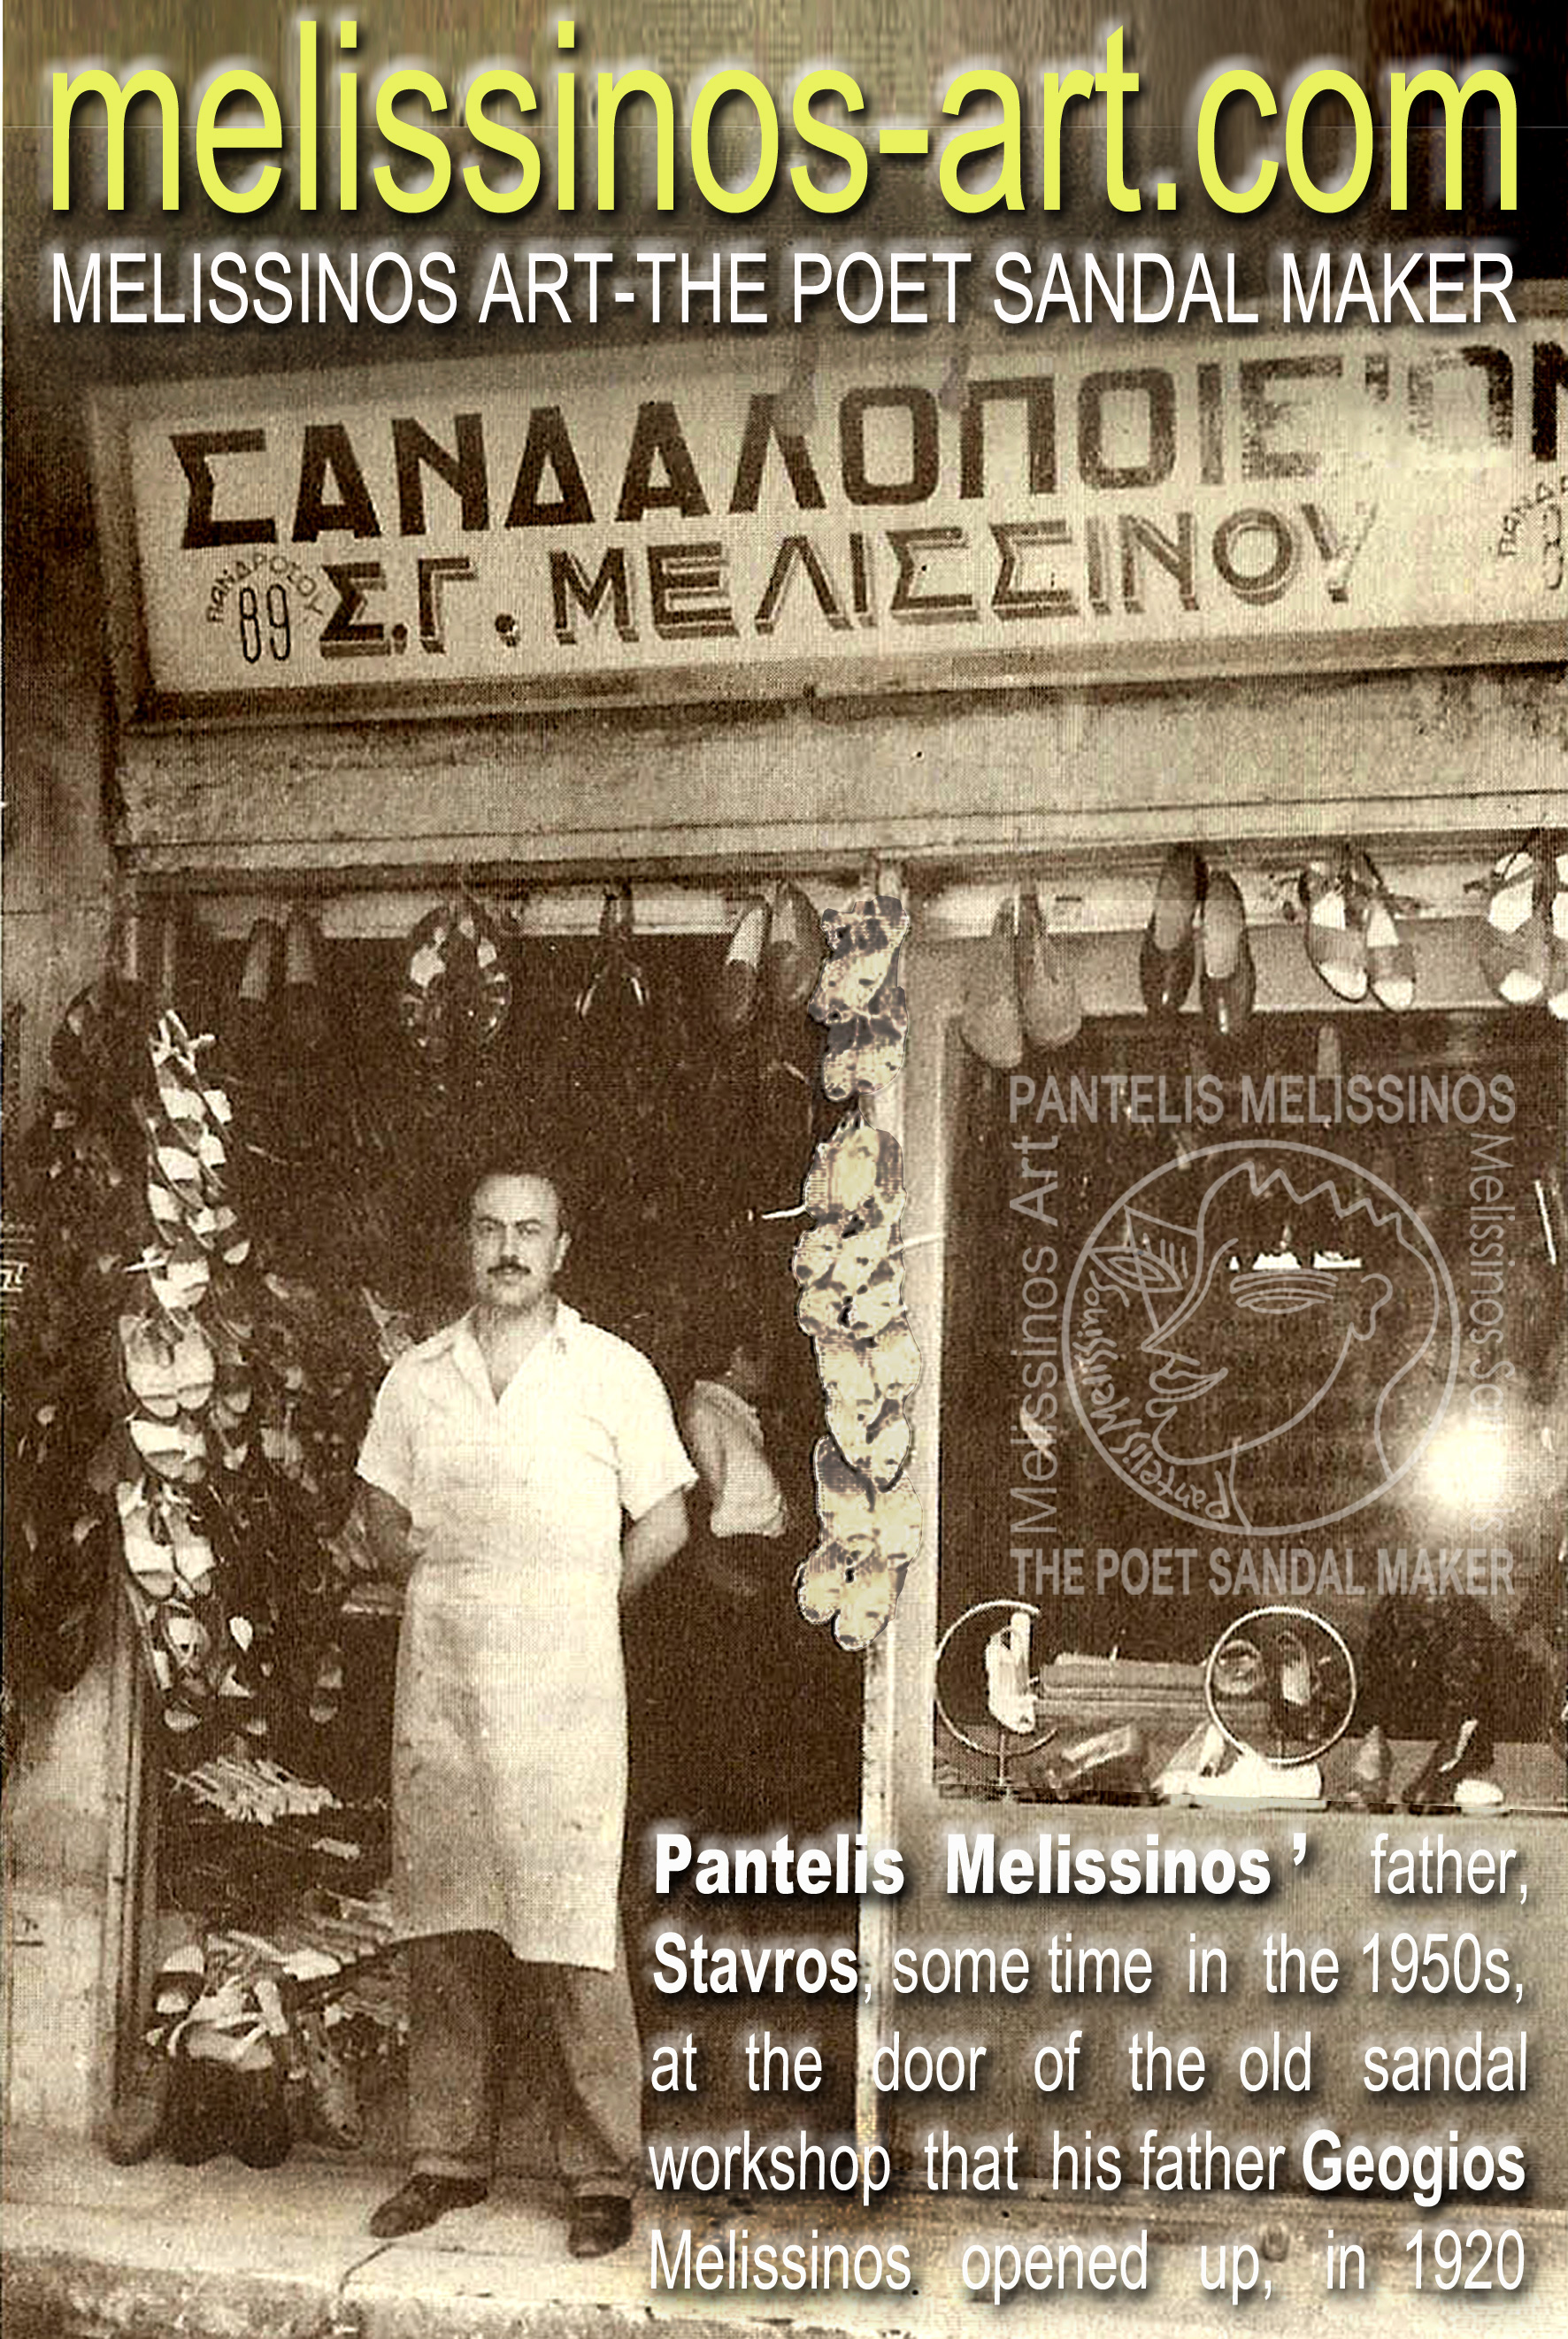 Stavros Melissinos, posing at the door of his father's sandal workshop, shortly after the latter's death in 1955.